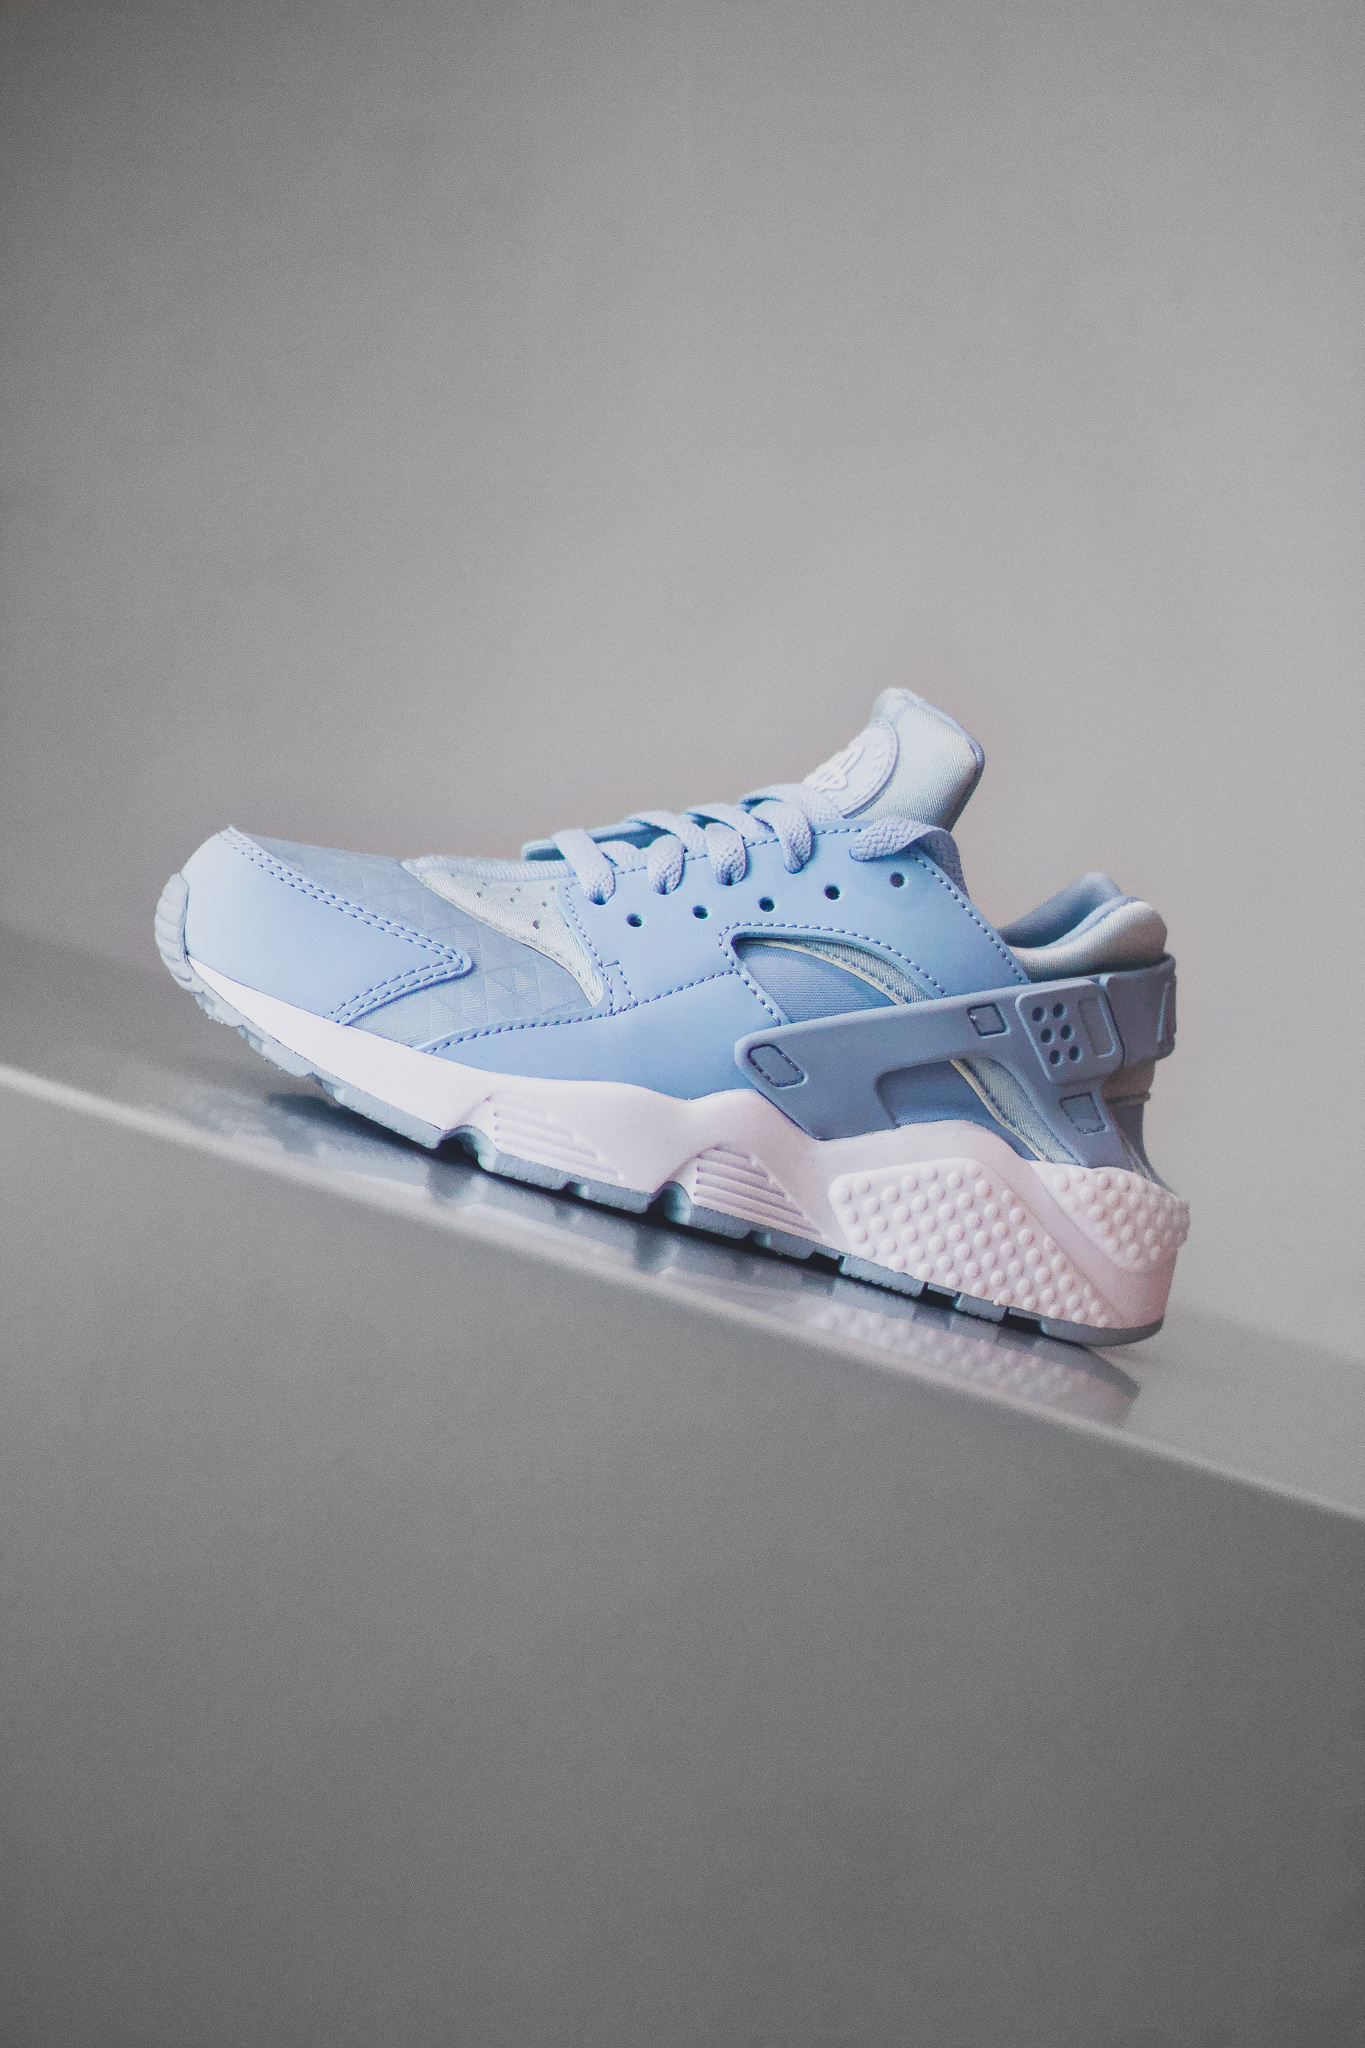 promo code 7b05d e25ea WMNS AIR HUARACHE RUN - Sneaker Room - Jersey City